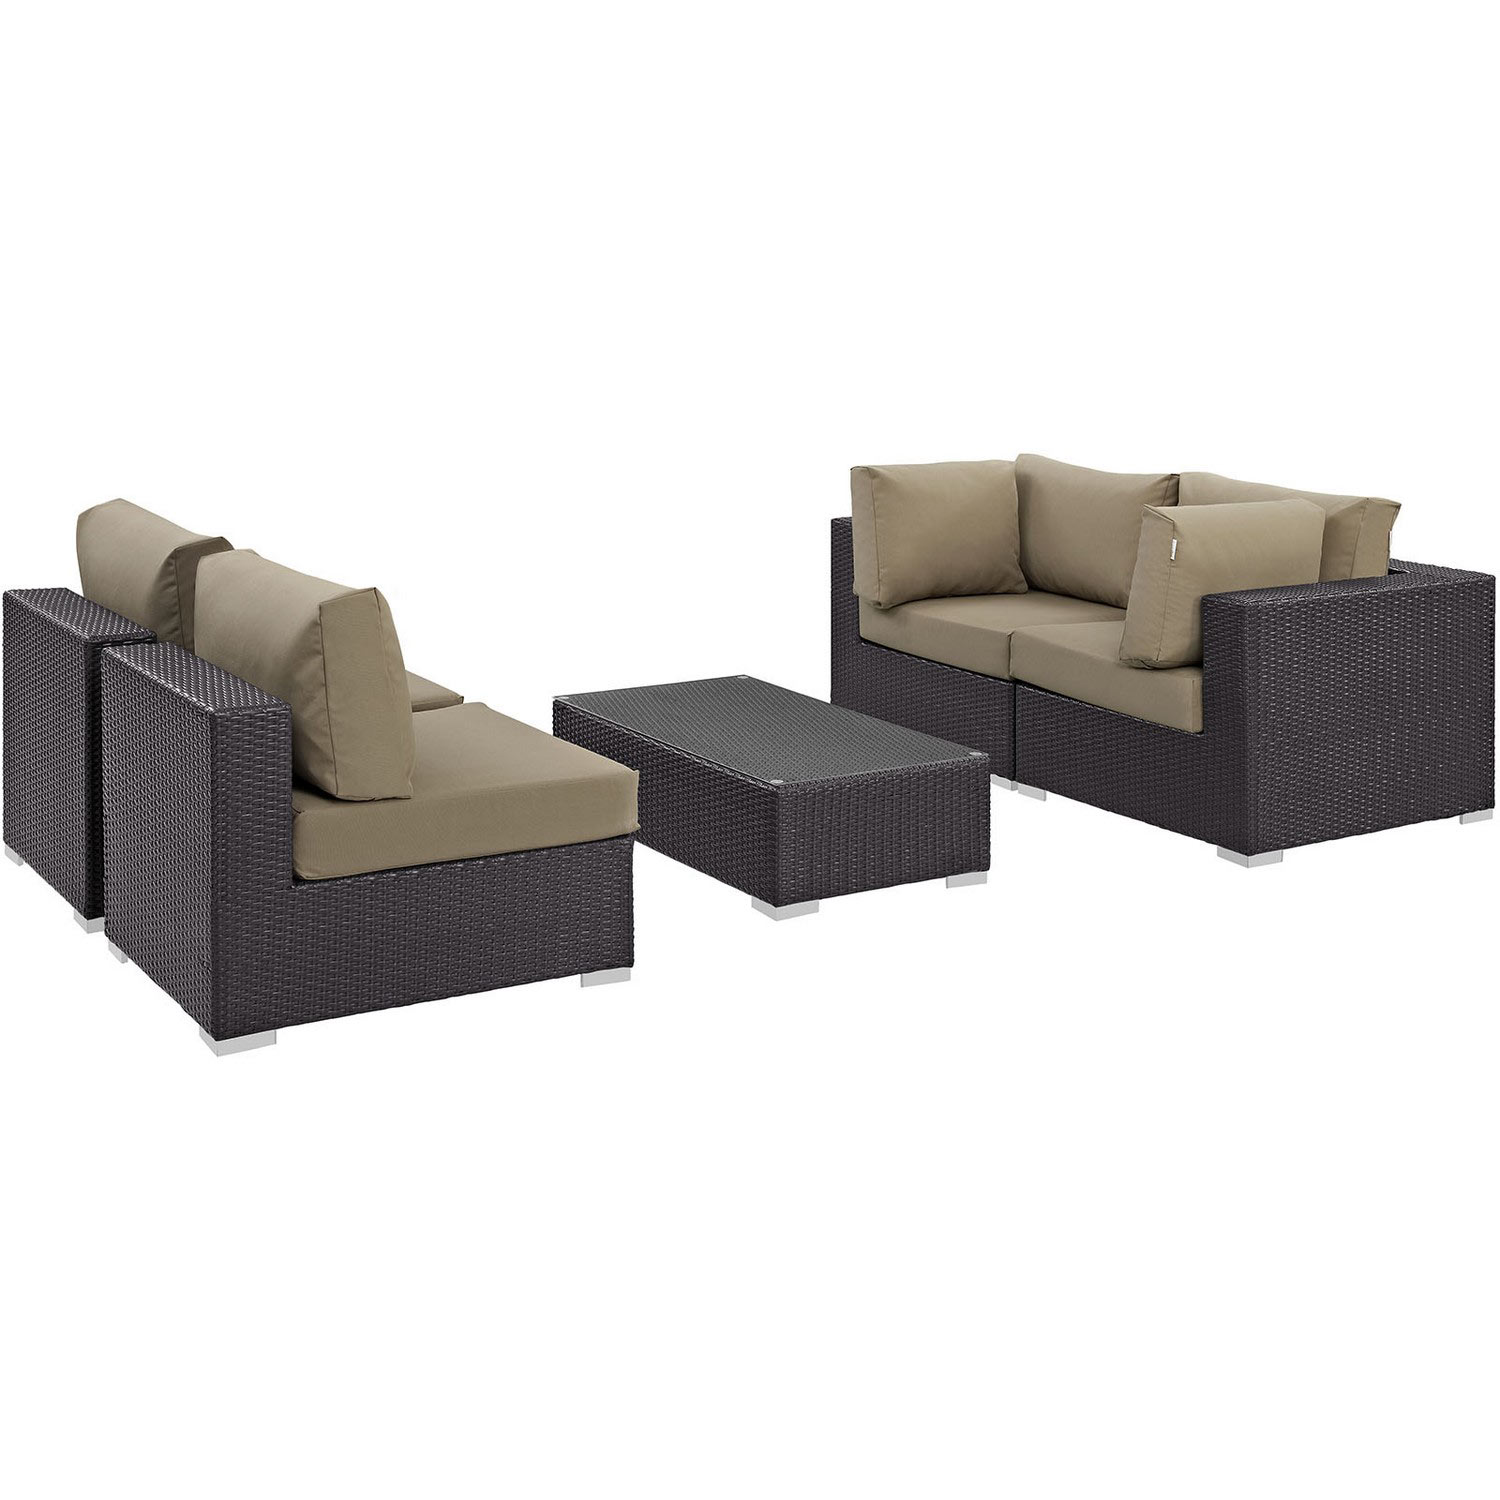 Modway Convene 5 Piece Outdoor Patio Sectional Set - Espresso Mocha